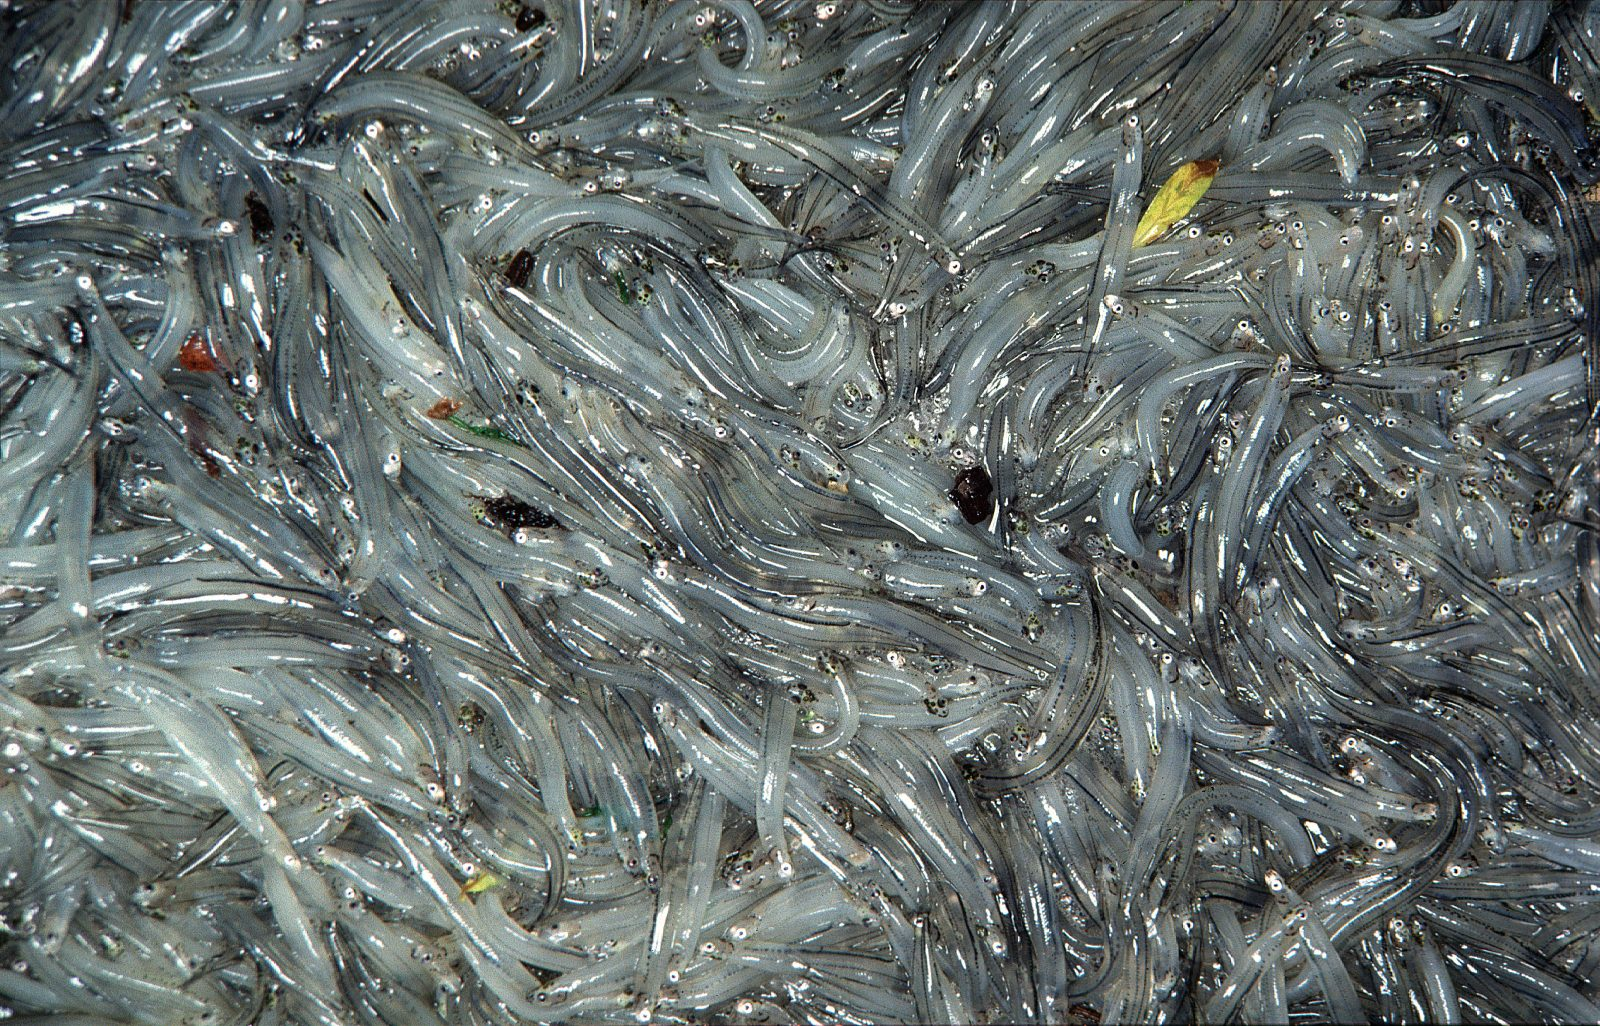 The grandiloquent Robert Morley publicly scorned them, but for many New Zealanders whitebait are paradise with fins on. The main component of the whitebait catch is the juveniles of a small galaxiid fish called inaka (if you use the South Island Maori spelling) or inanga shown here about twice life size. A characteristic feature of inanga whitebait is the dark speckling along the back and sides of the body.